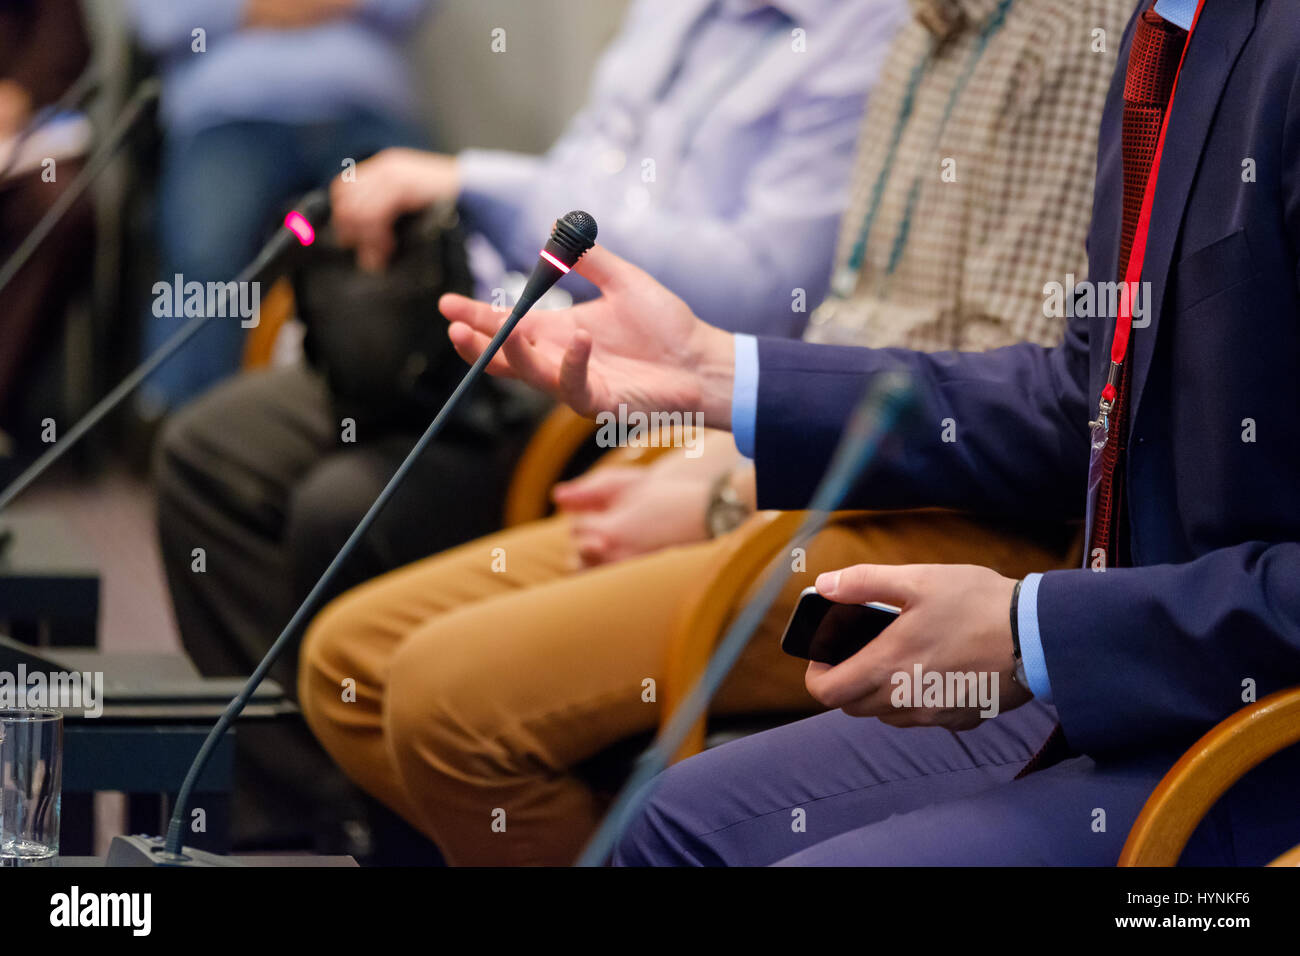 Speaker at a business conference - Stock Image